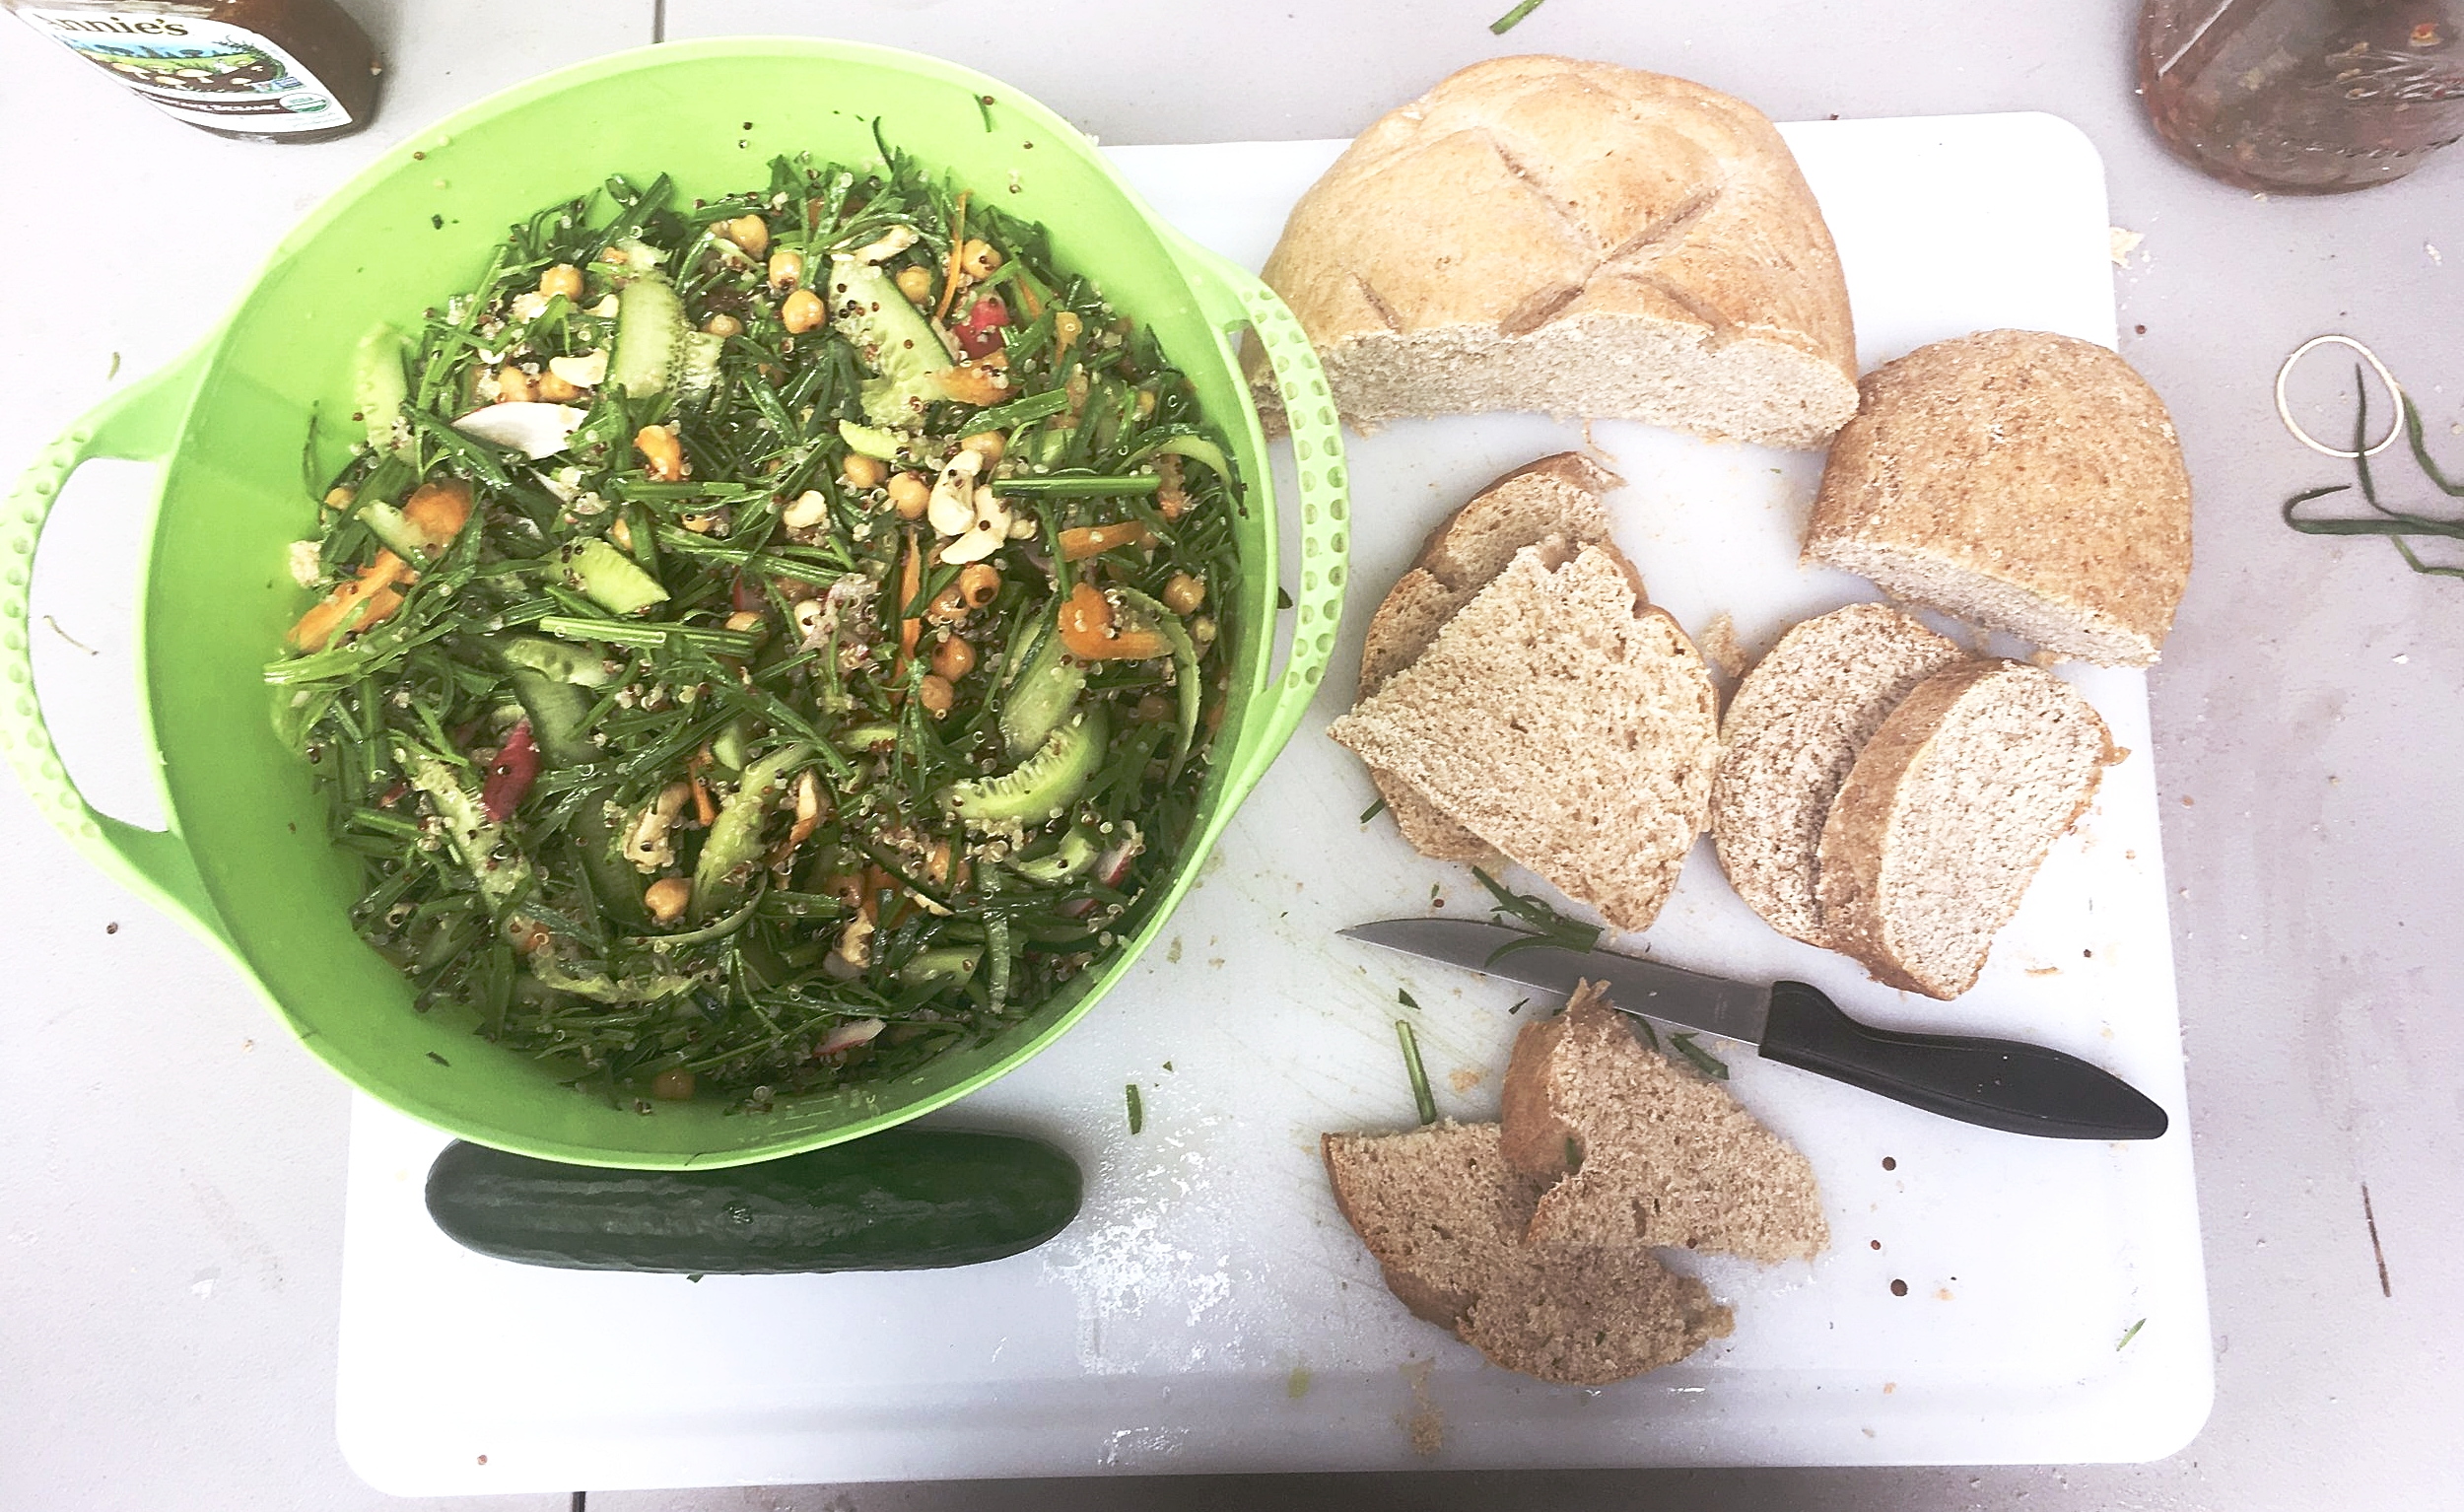 The Finished salad with homemade bread